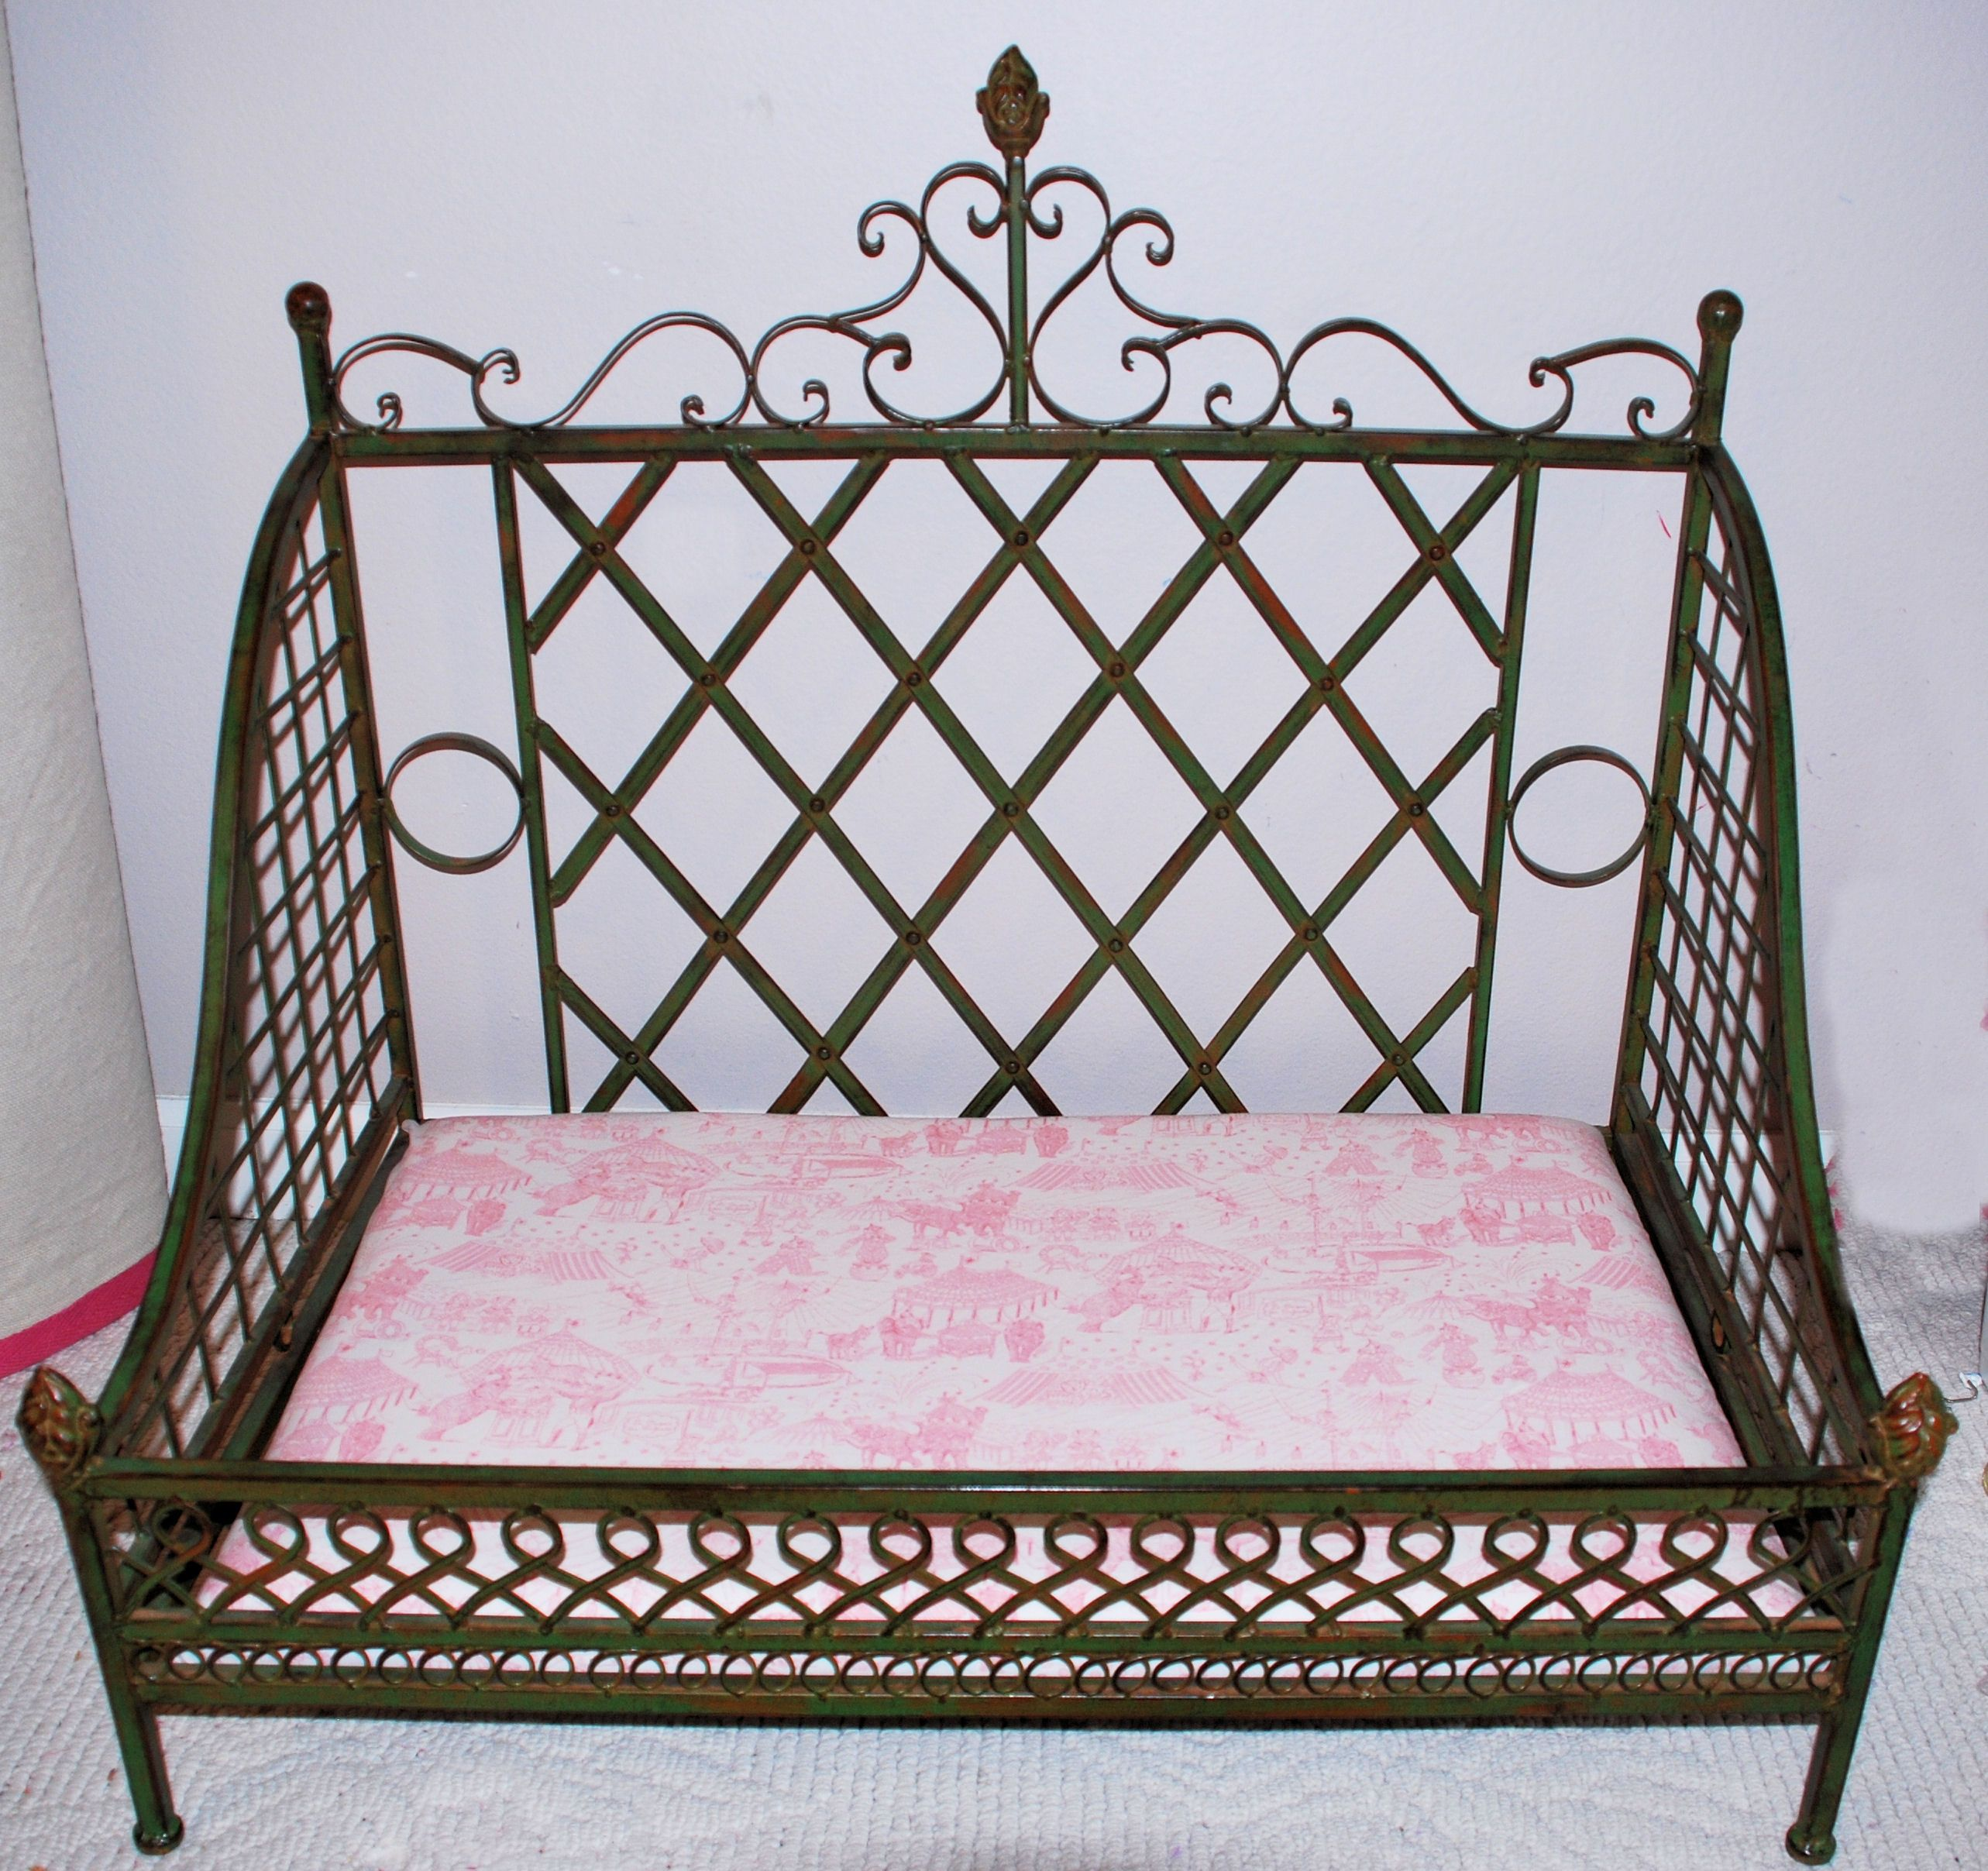 Fancy iron DOLL BED!! Iron dog bed (new) purchased at